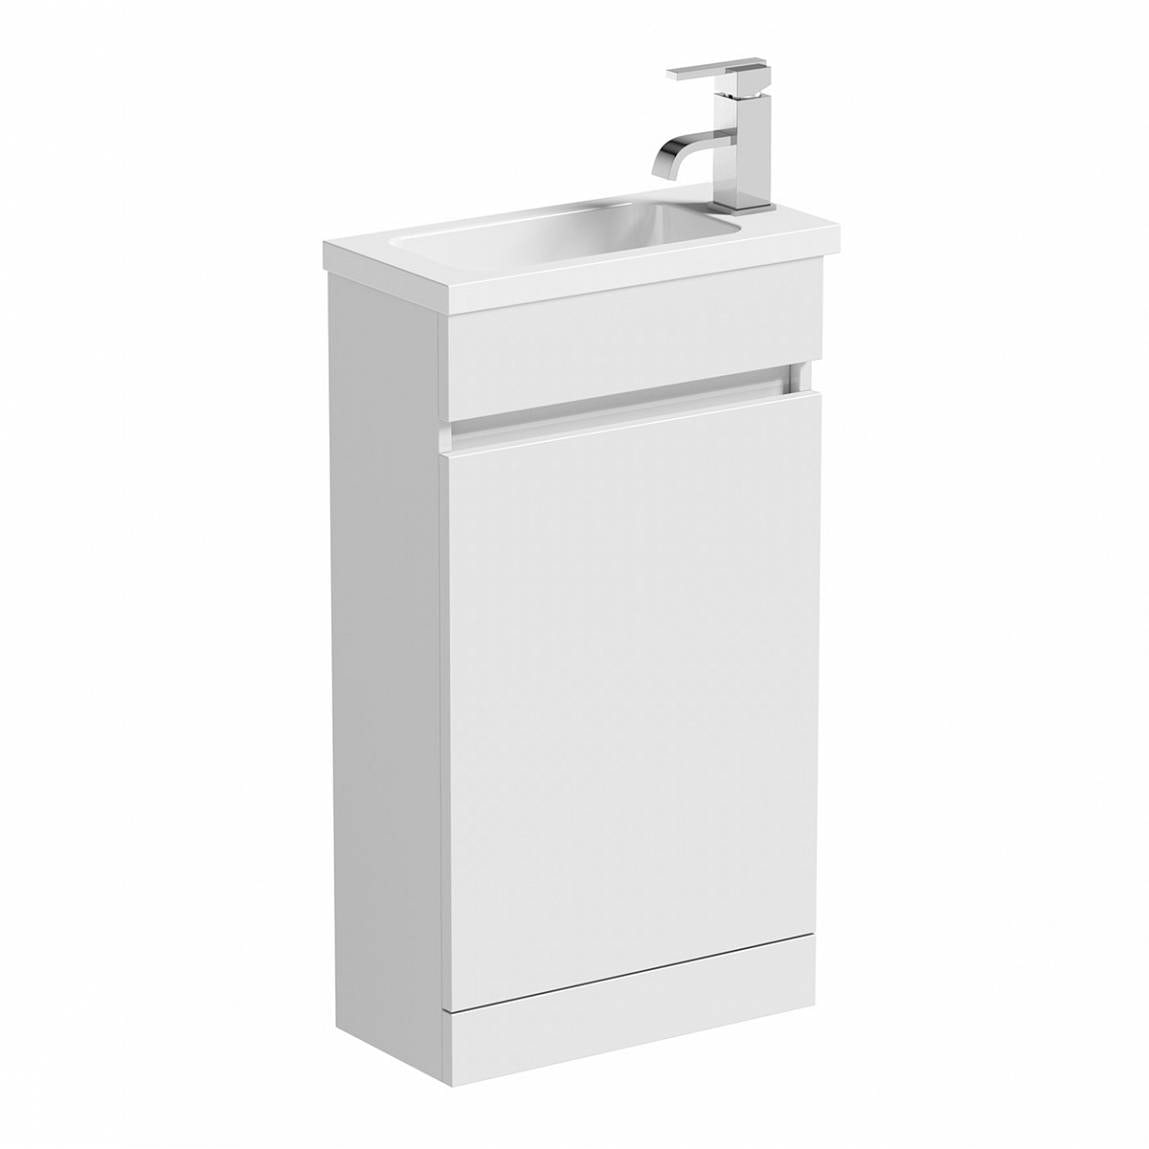 Plan White Compact Unit & Basin